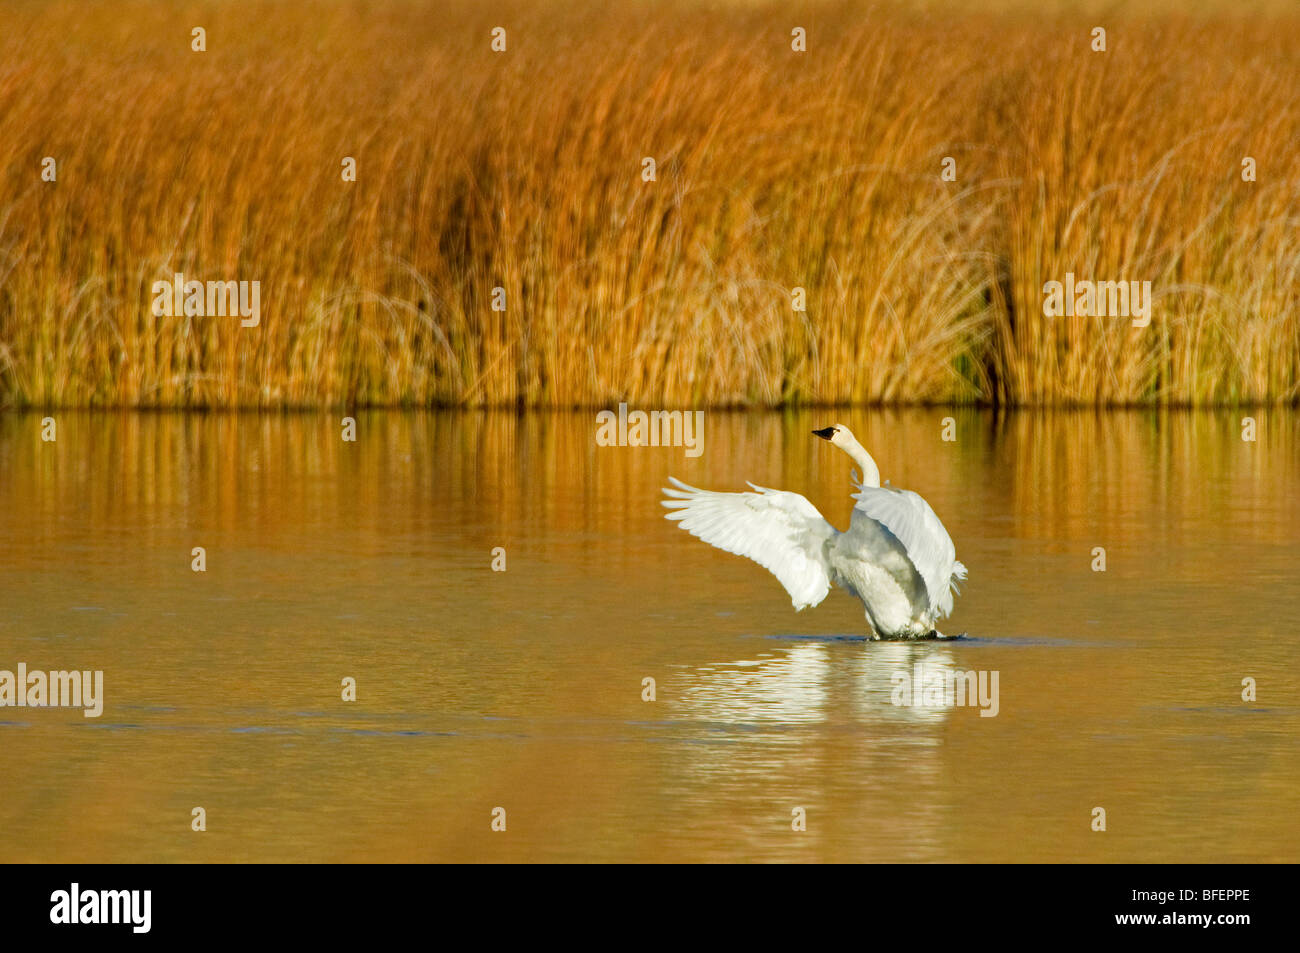 A Trumpeter swan (Cygnus buccinator) comes out of water on a beautiful fall day just south of Kamloops British Columbia - Stock Image